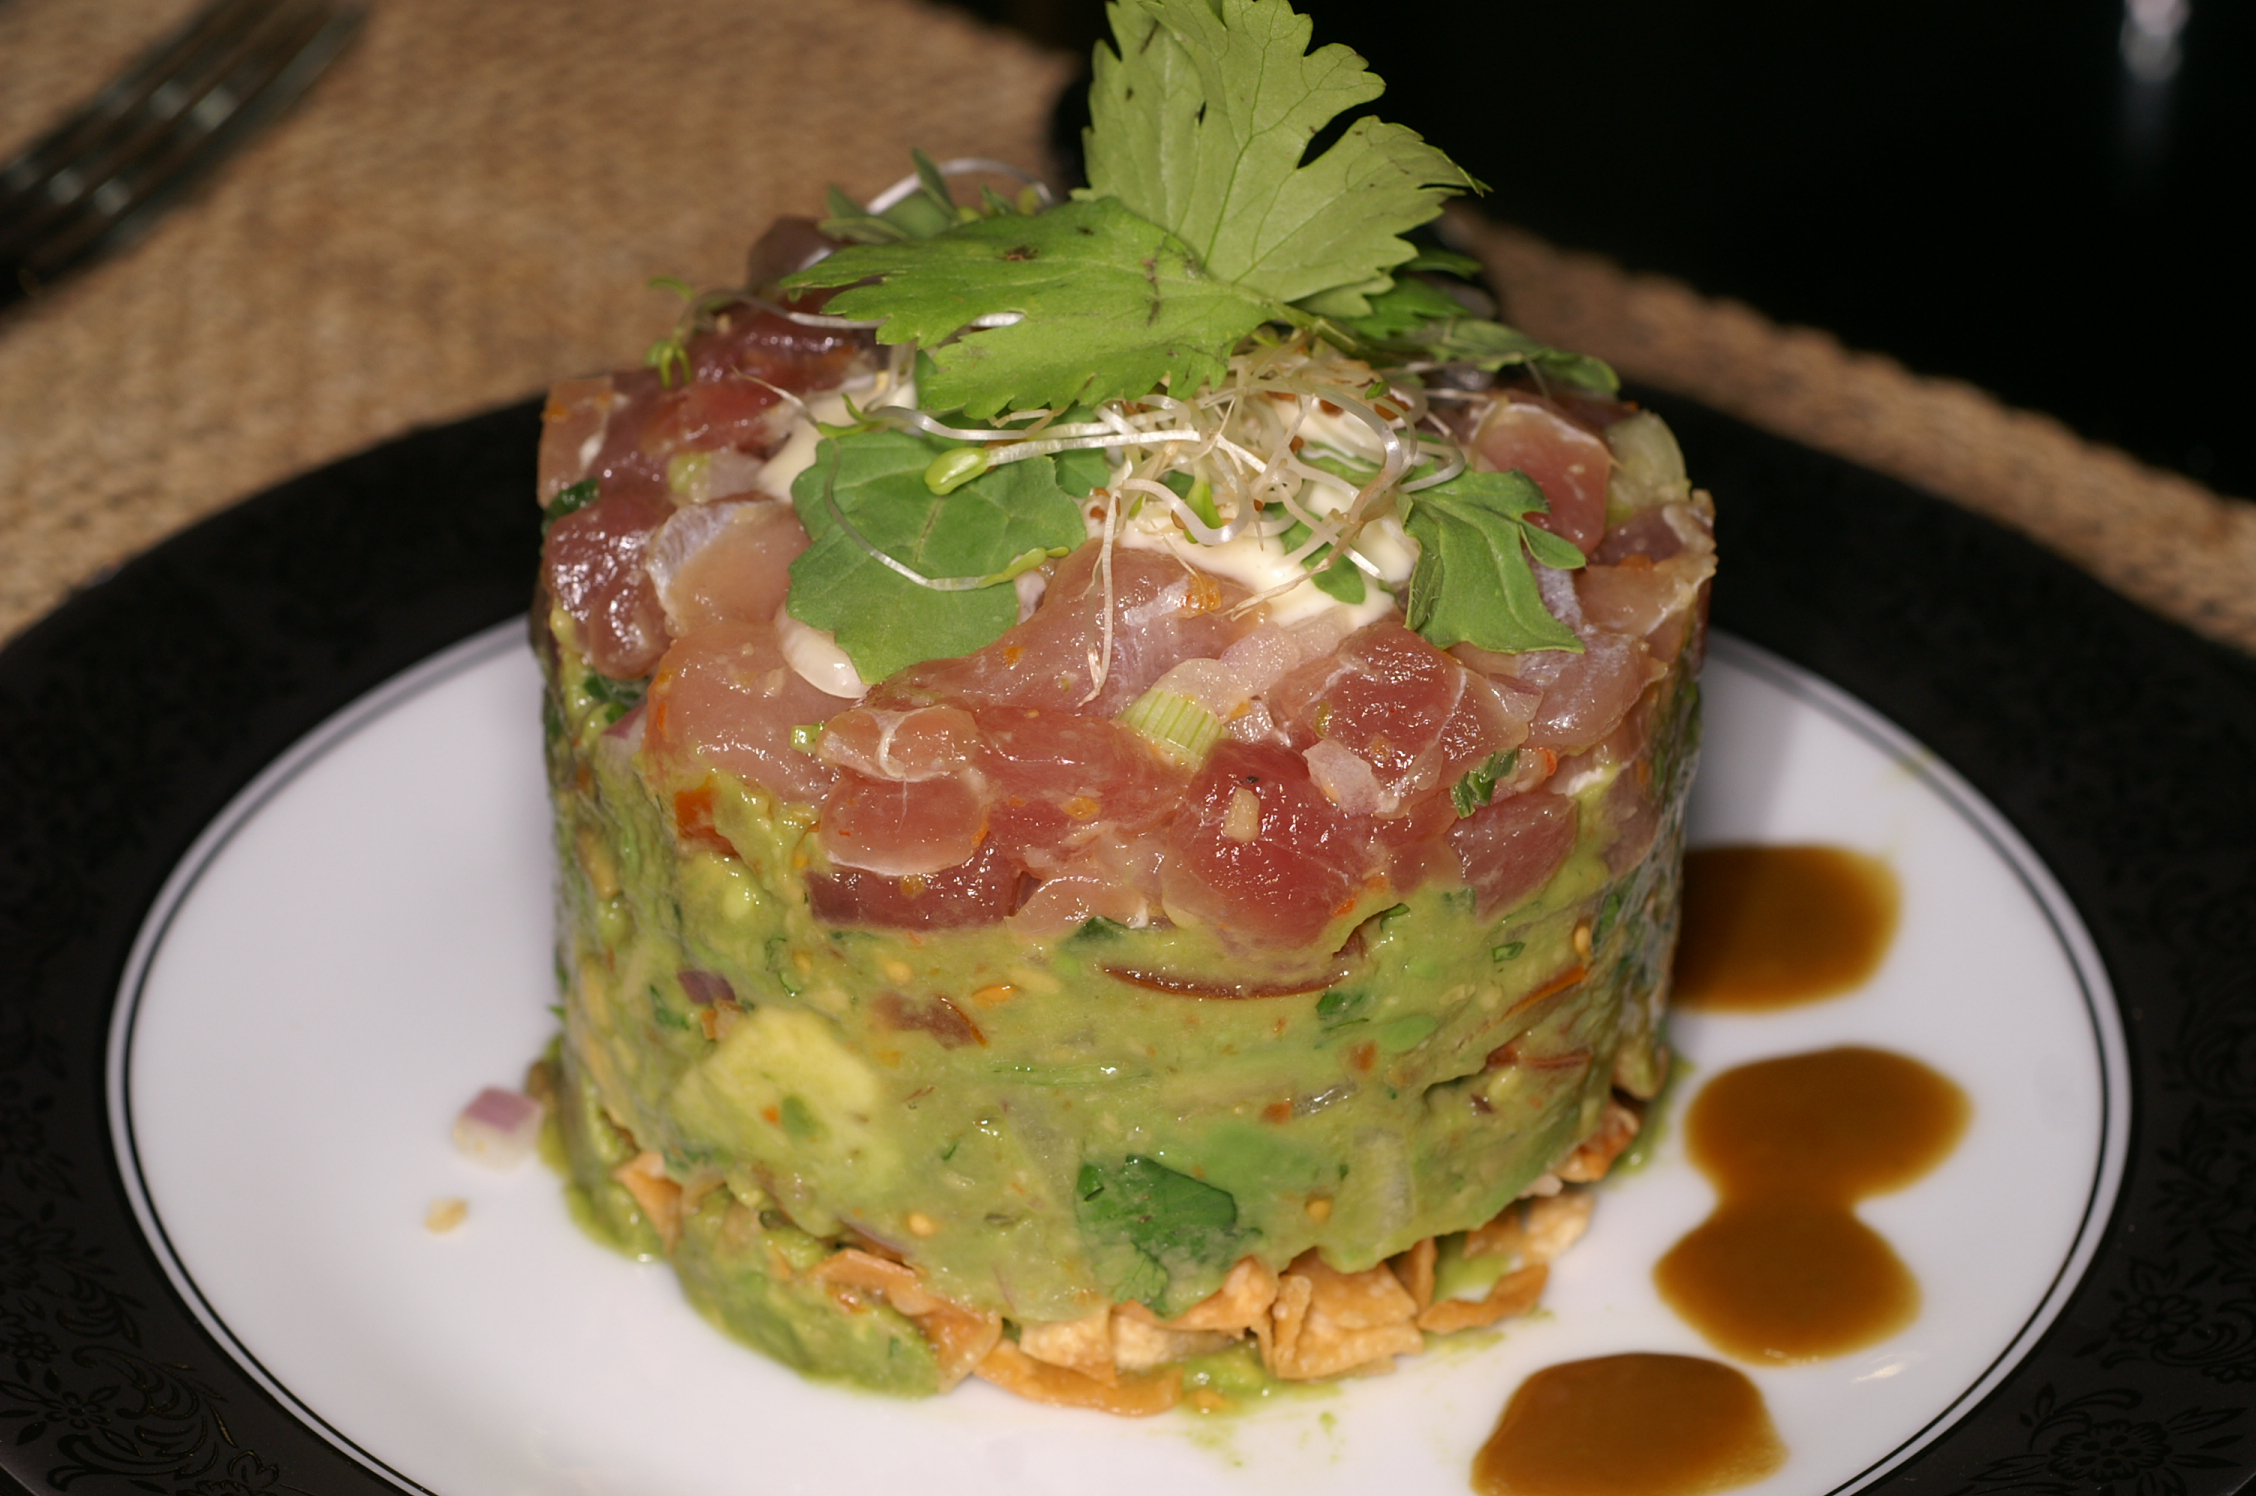 How to make tuna poke with avocado slot machine motherboard battery